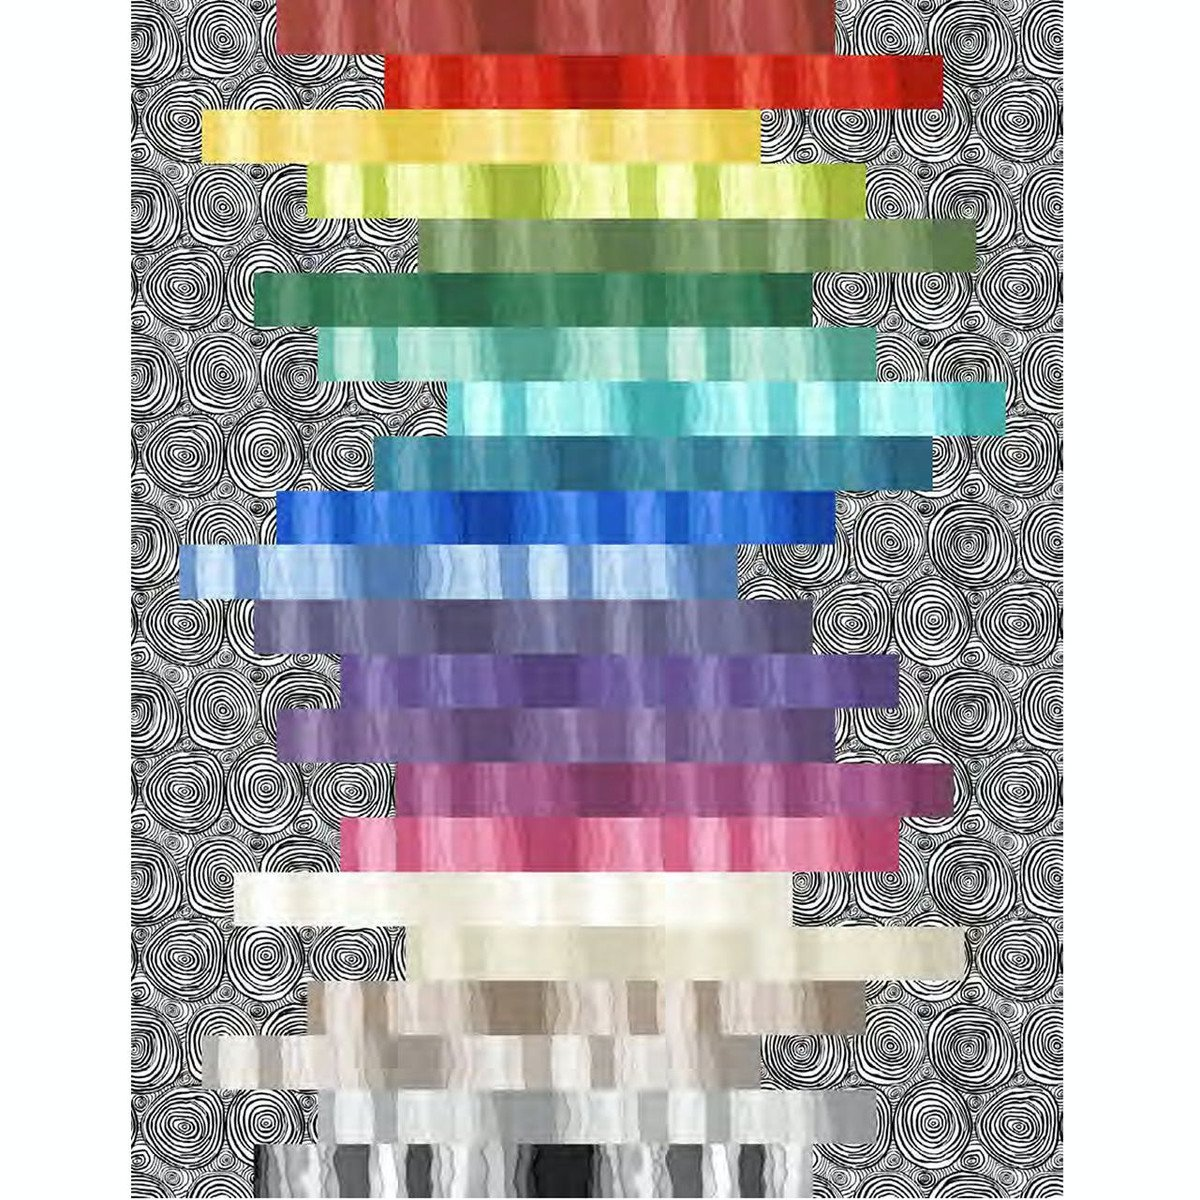 Stratosphere Stacked Quilt Kit